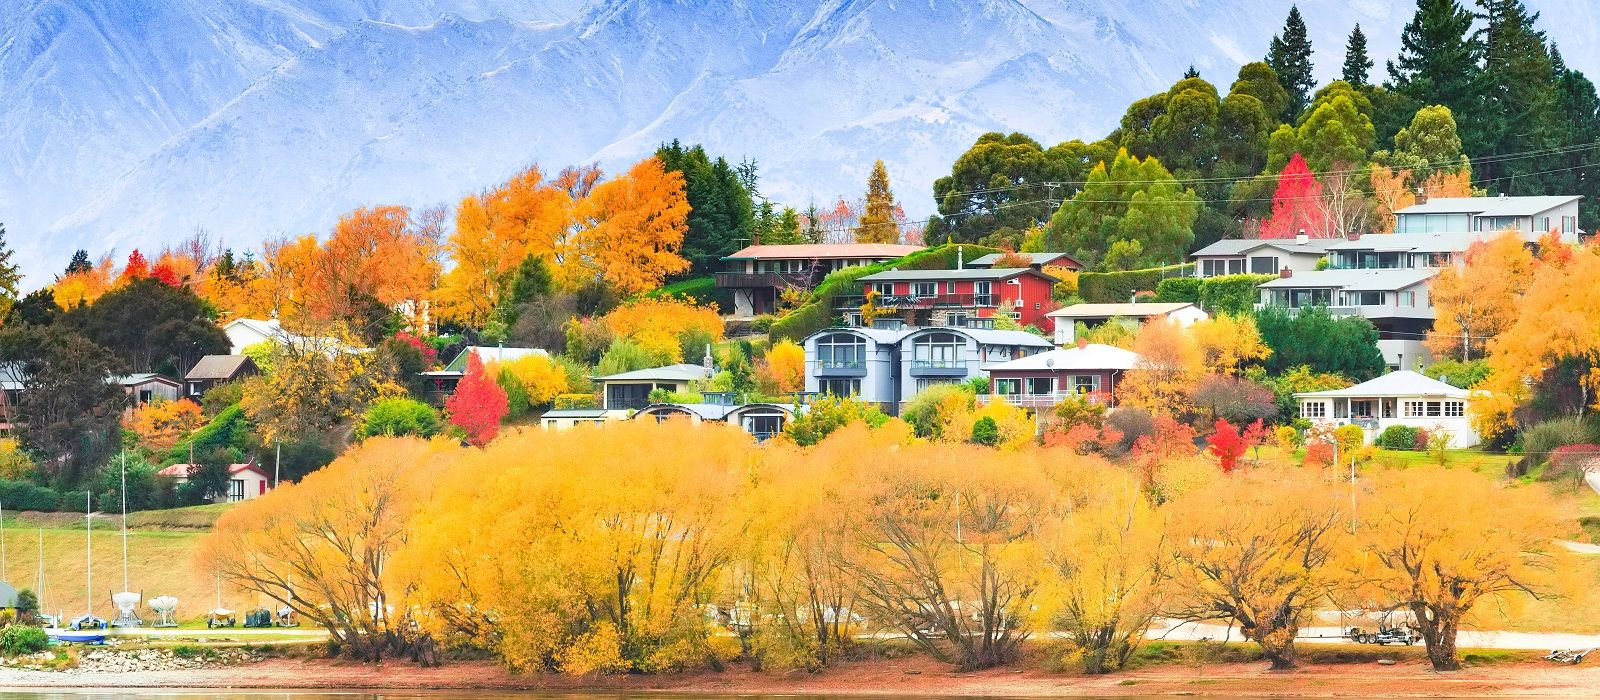 New Zealand: Highlights of the North and South Islands Tour Trip 2